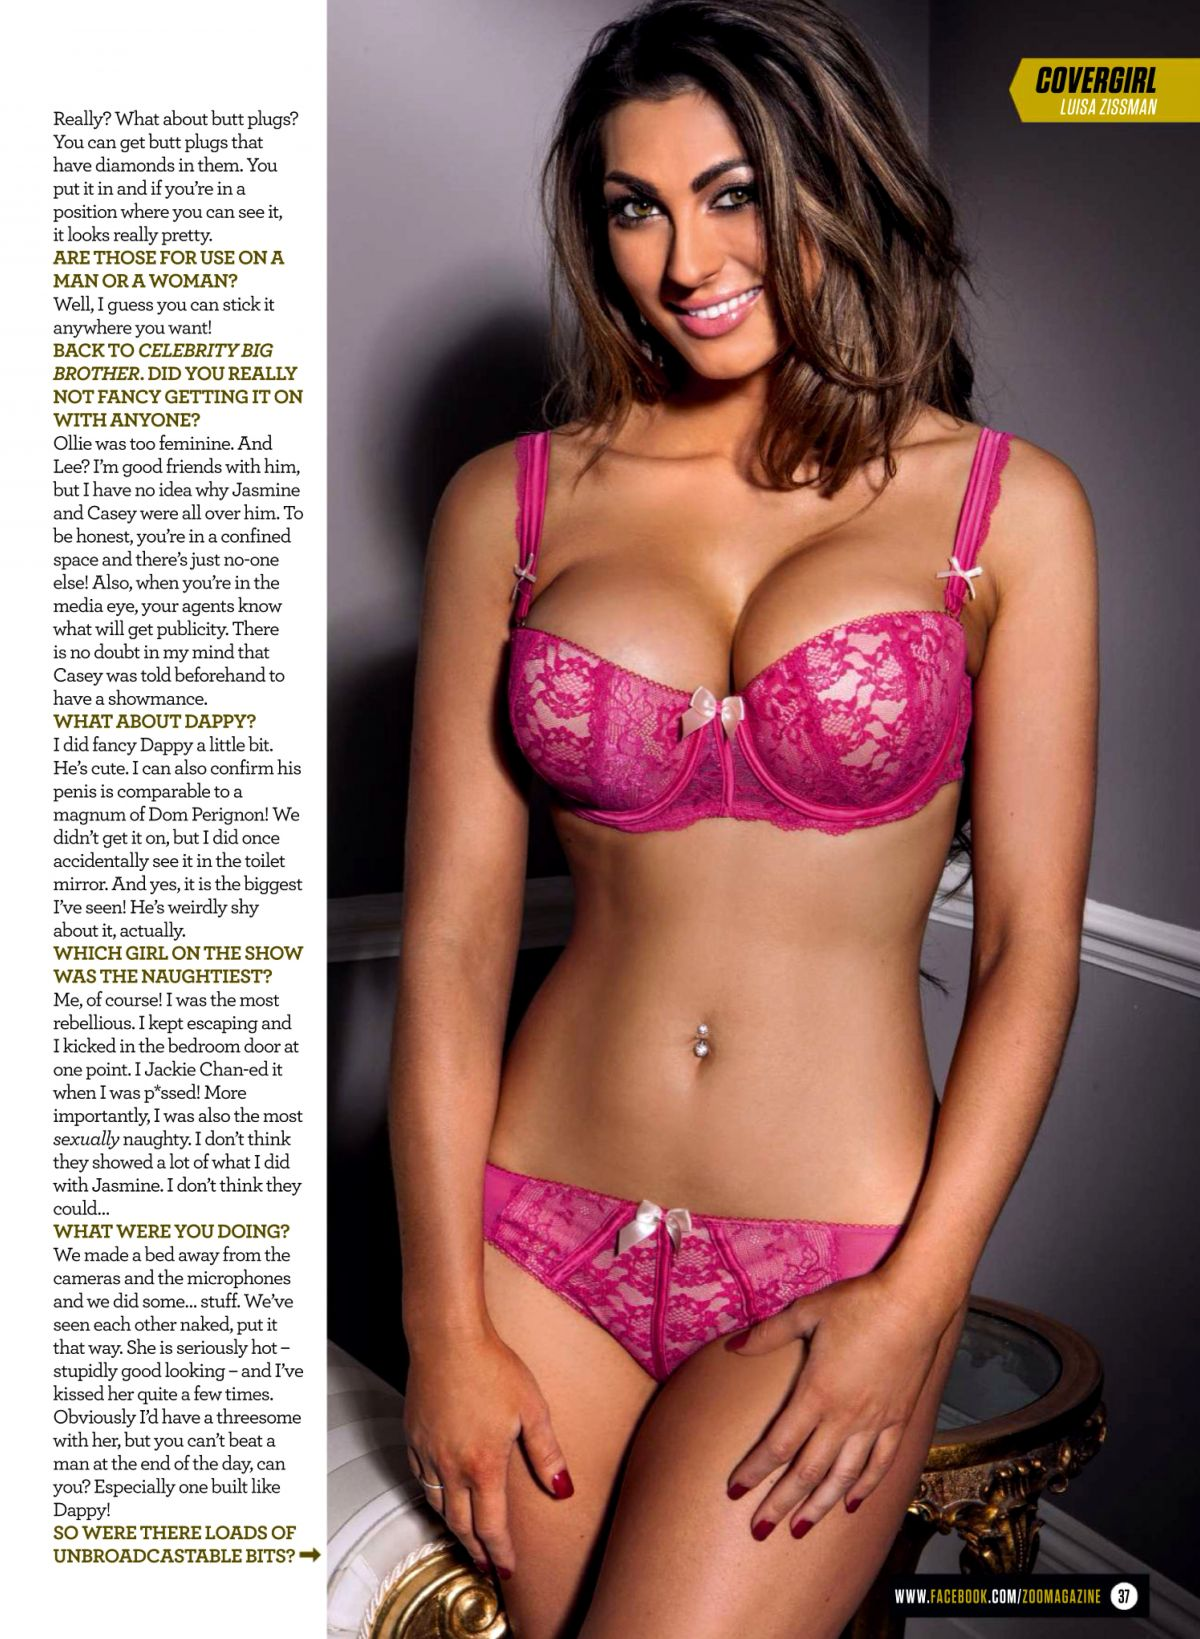 luisa-zissman-in-zoo-magazine-20th-february-2014-issue_6.jpg - 301.75 KB